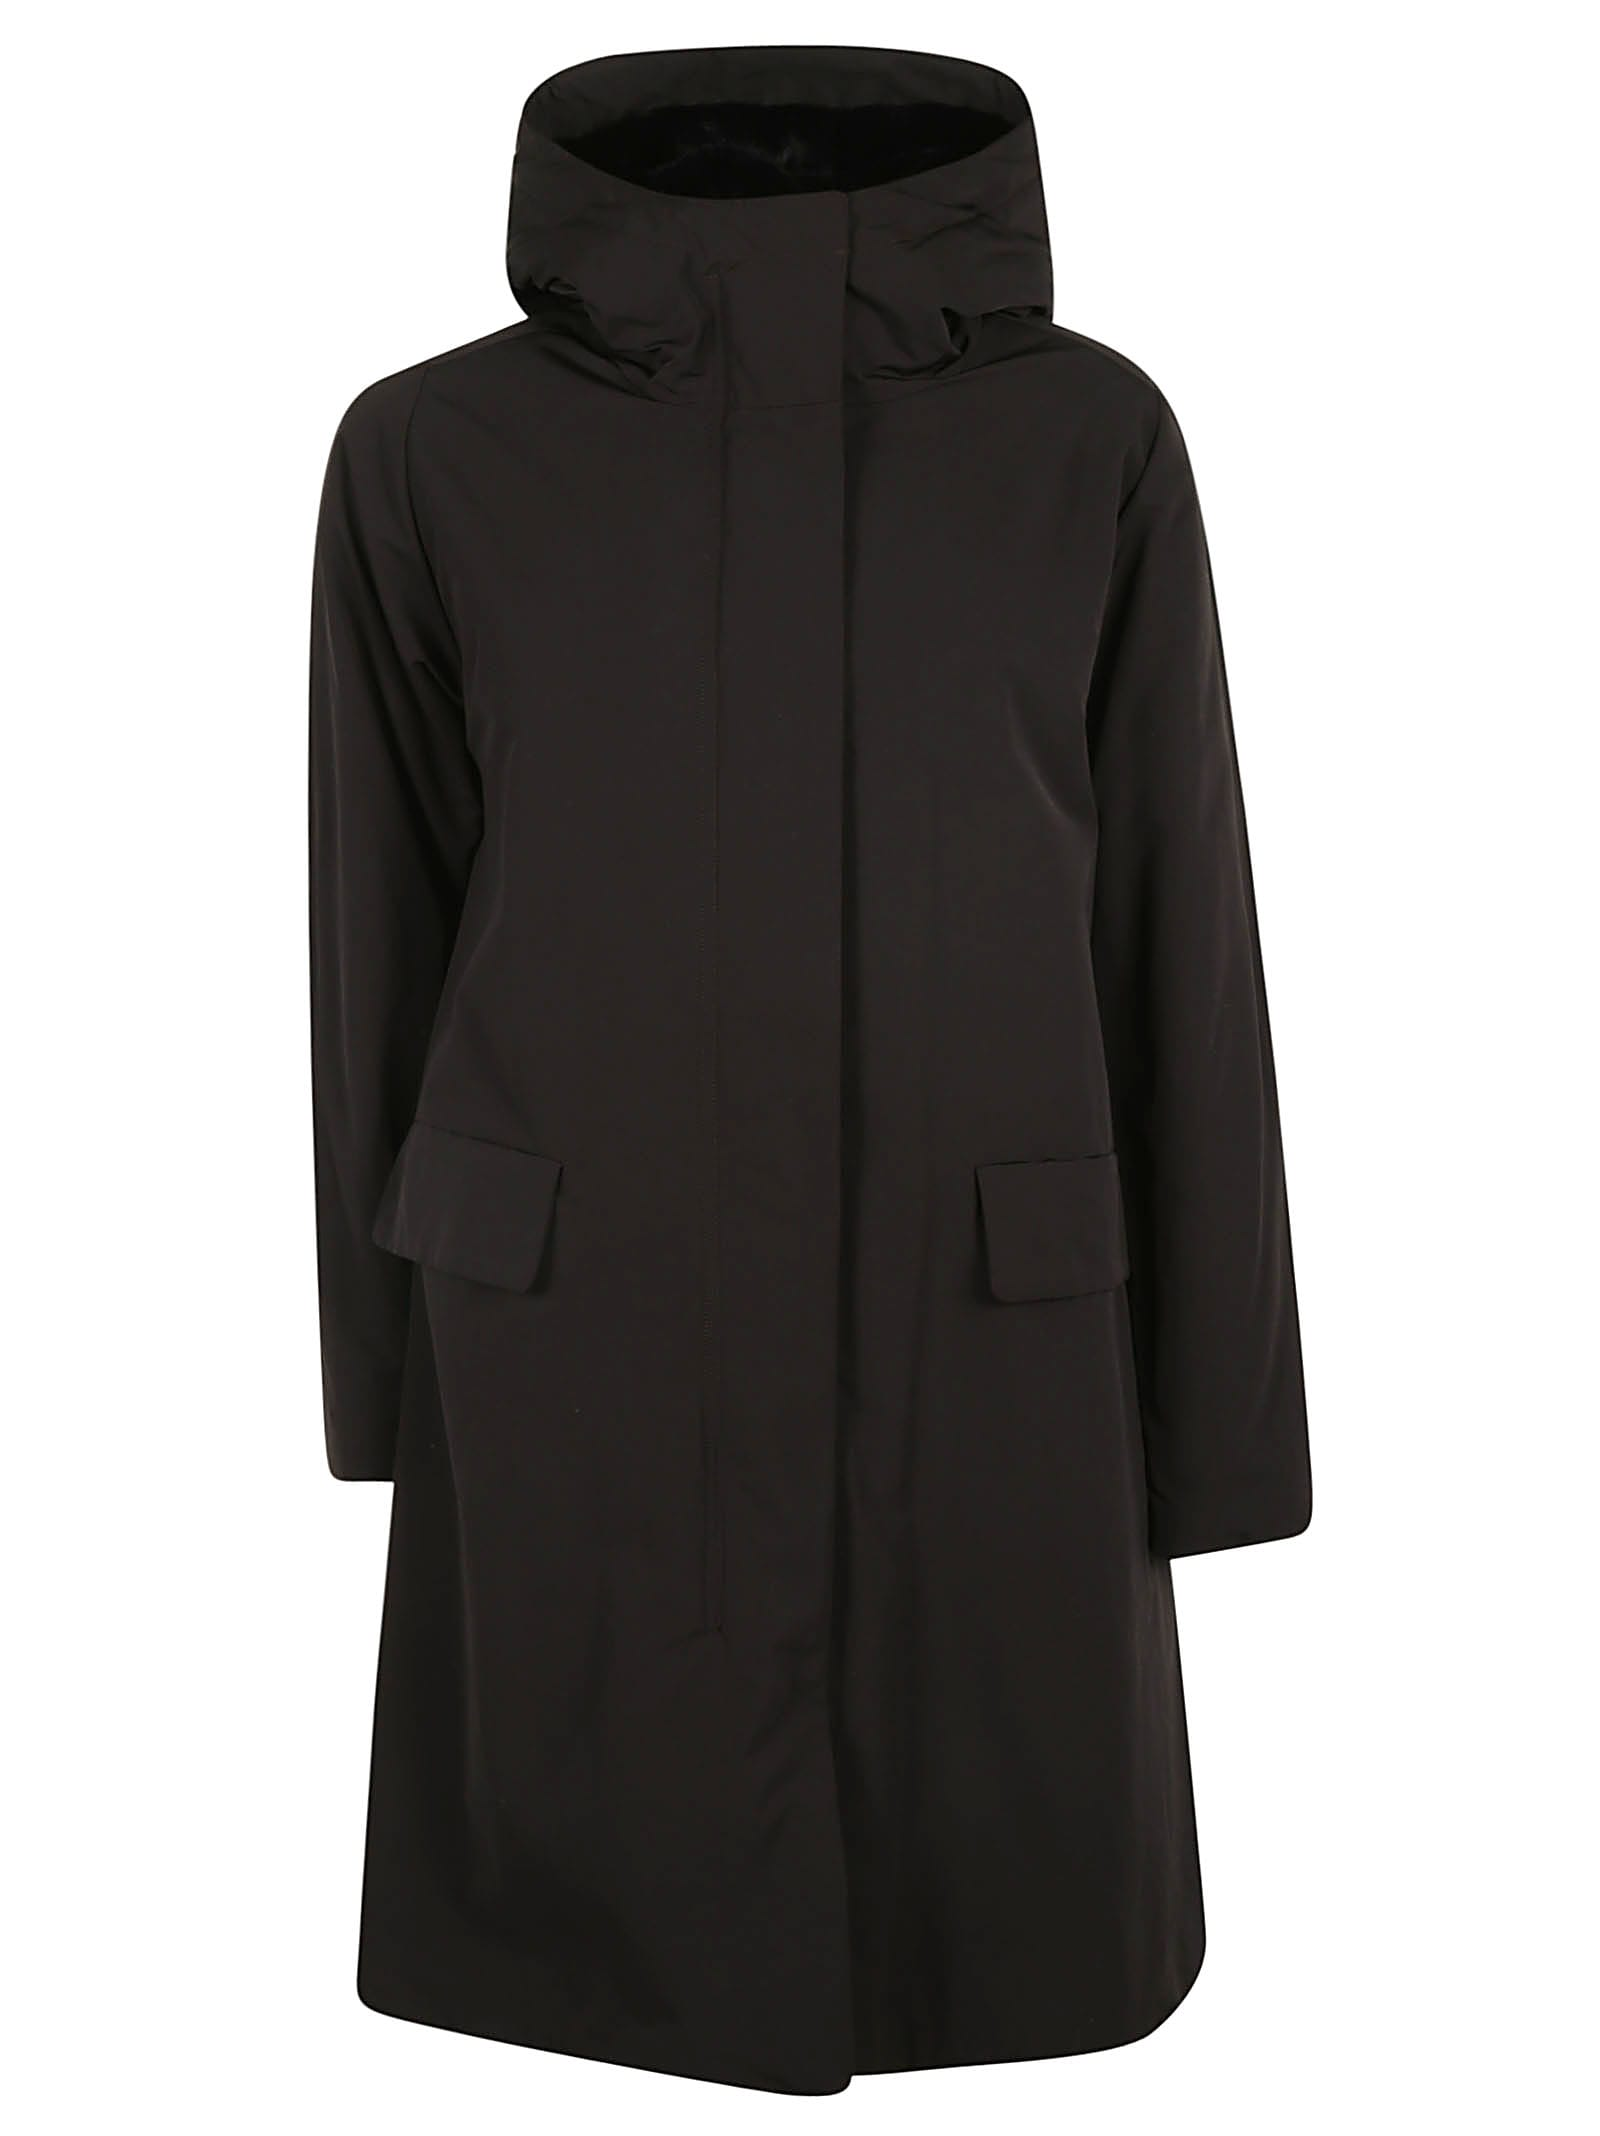 Aspesi Concealed Fastening Oversized Hooded Parka